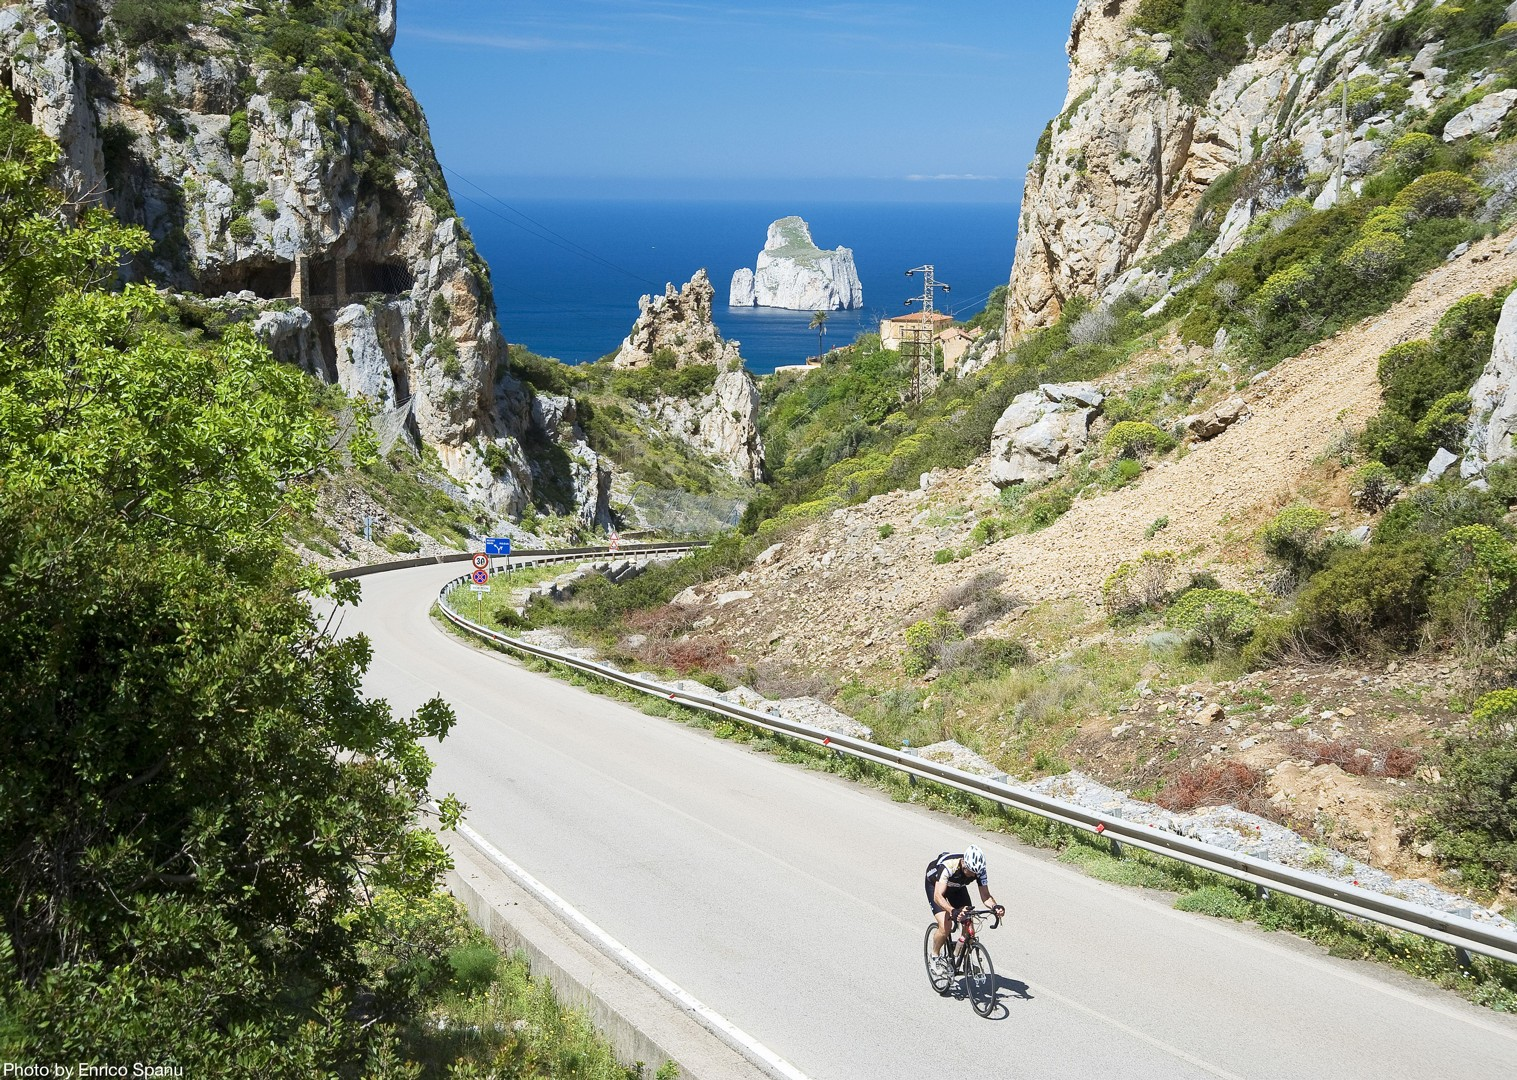 Sardinia-Coastal-Explorer-Self-Guided-Road-Cycling-Holiday.jpg - Italy - Sardinia - Coastal Explorer - Self Guided Road Cycling Holiday - Italia Road Cycling